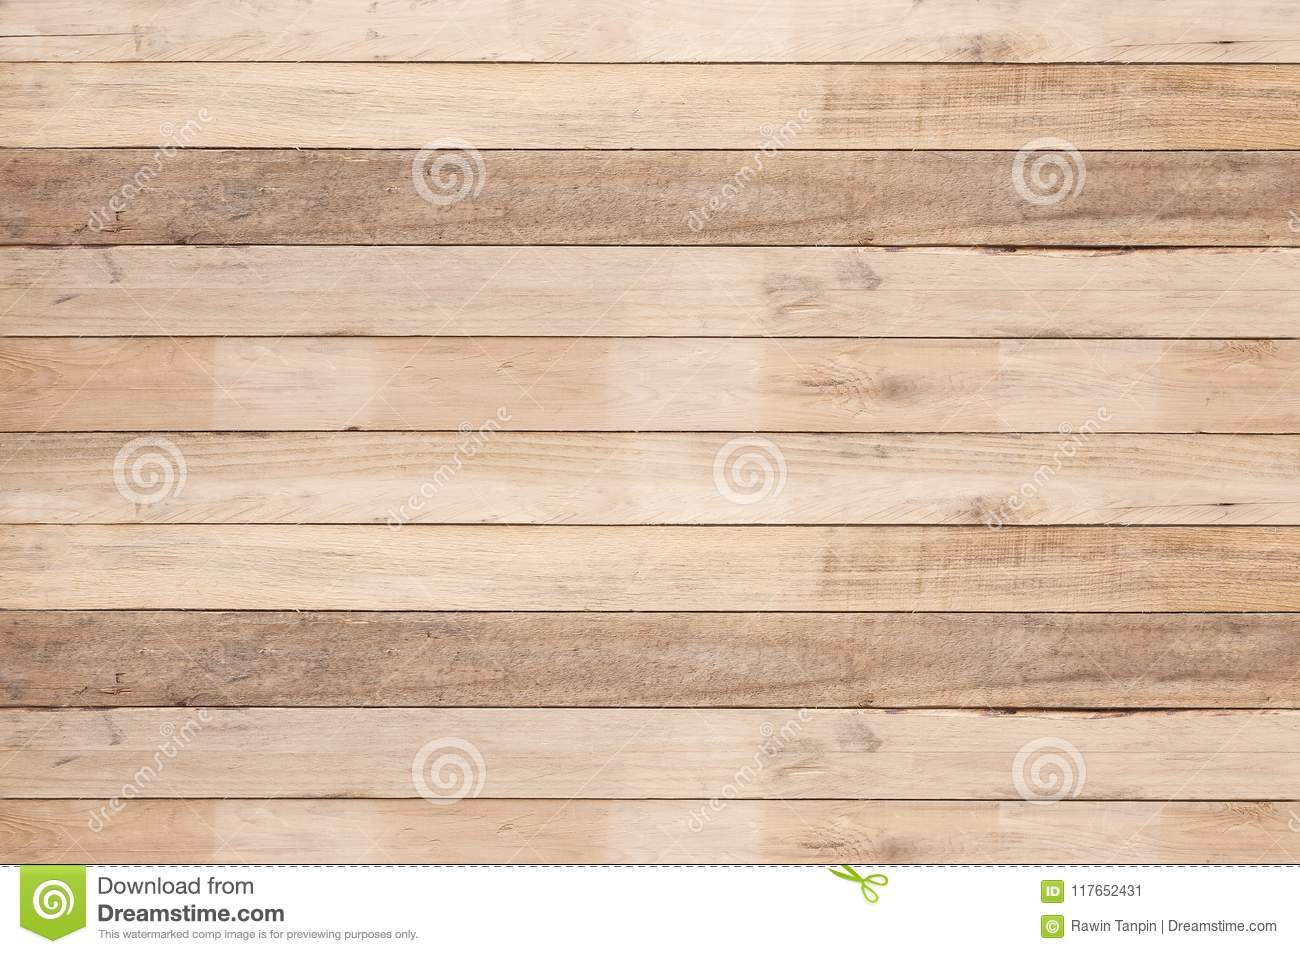 old wood plank wall background, Old wooden uneven texture pattern background